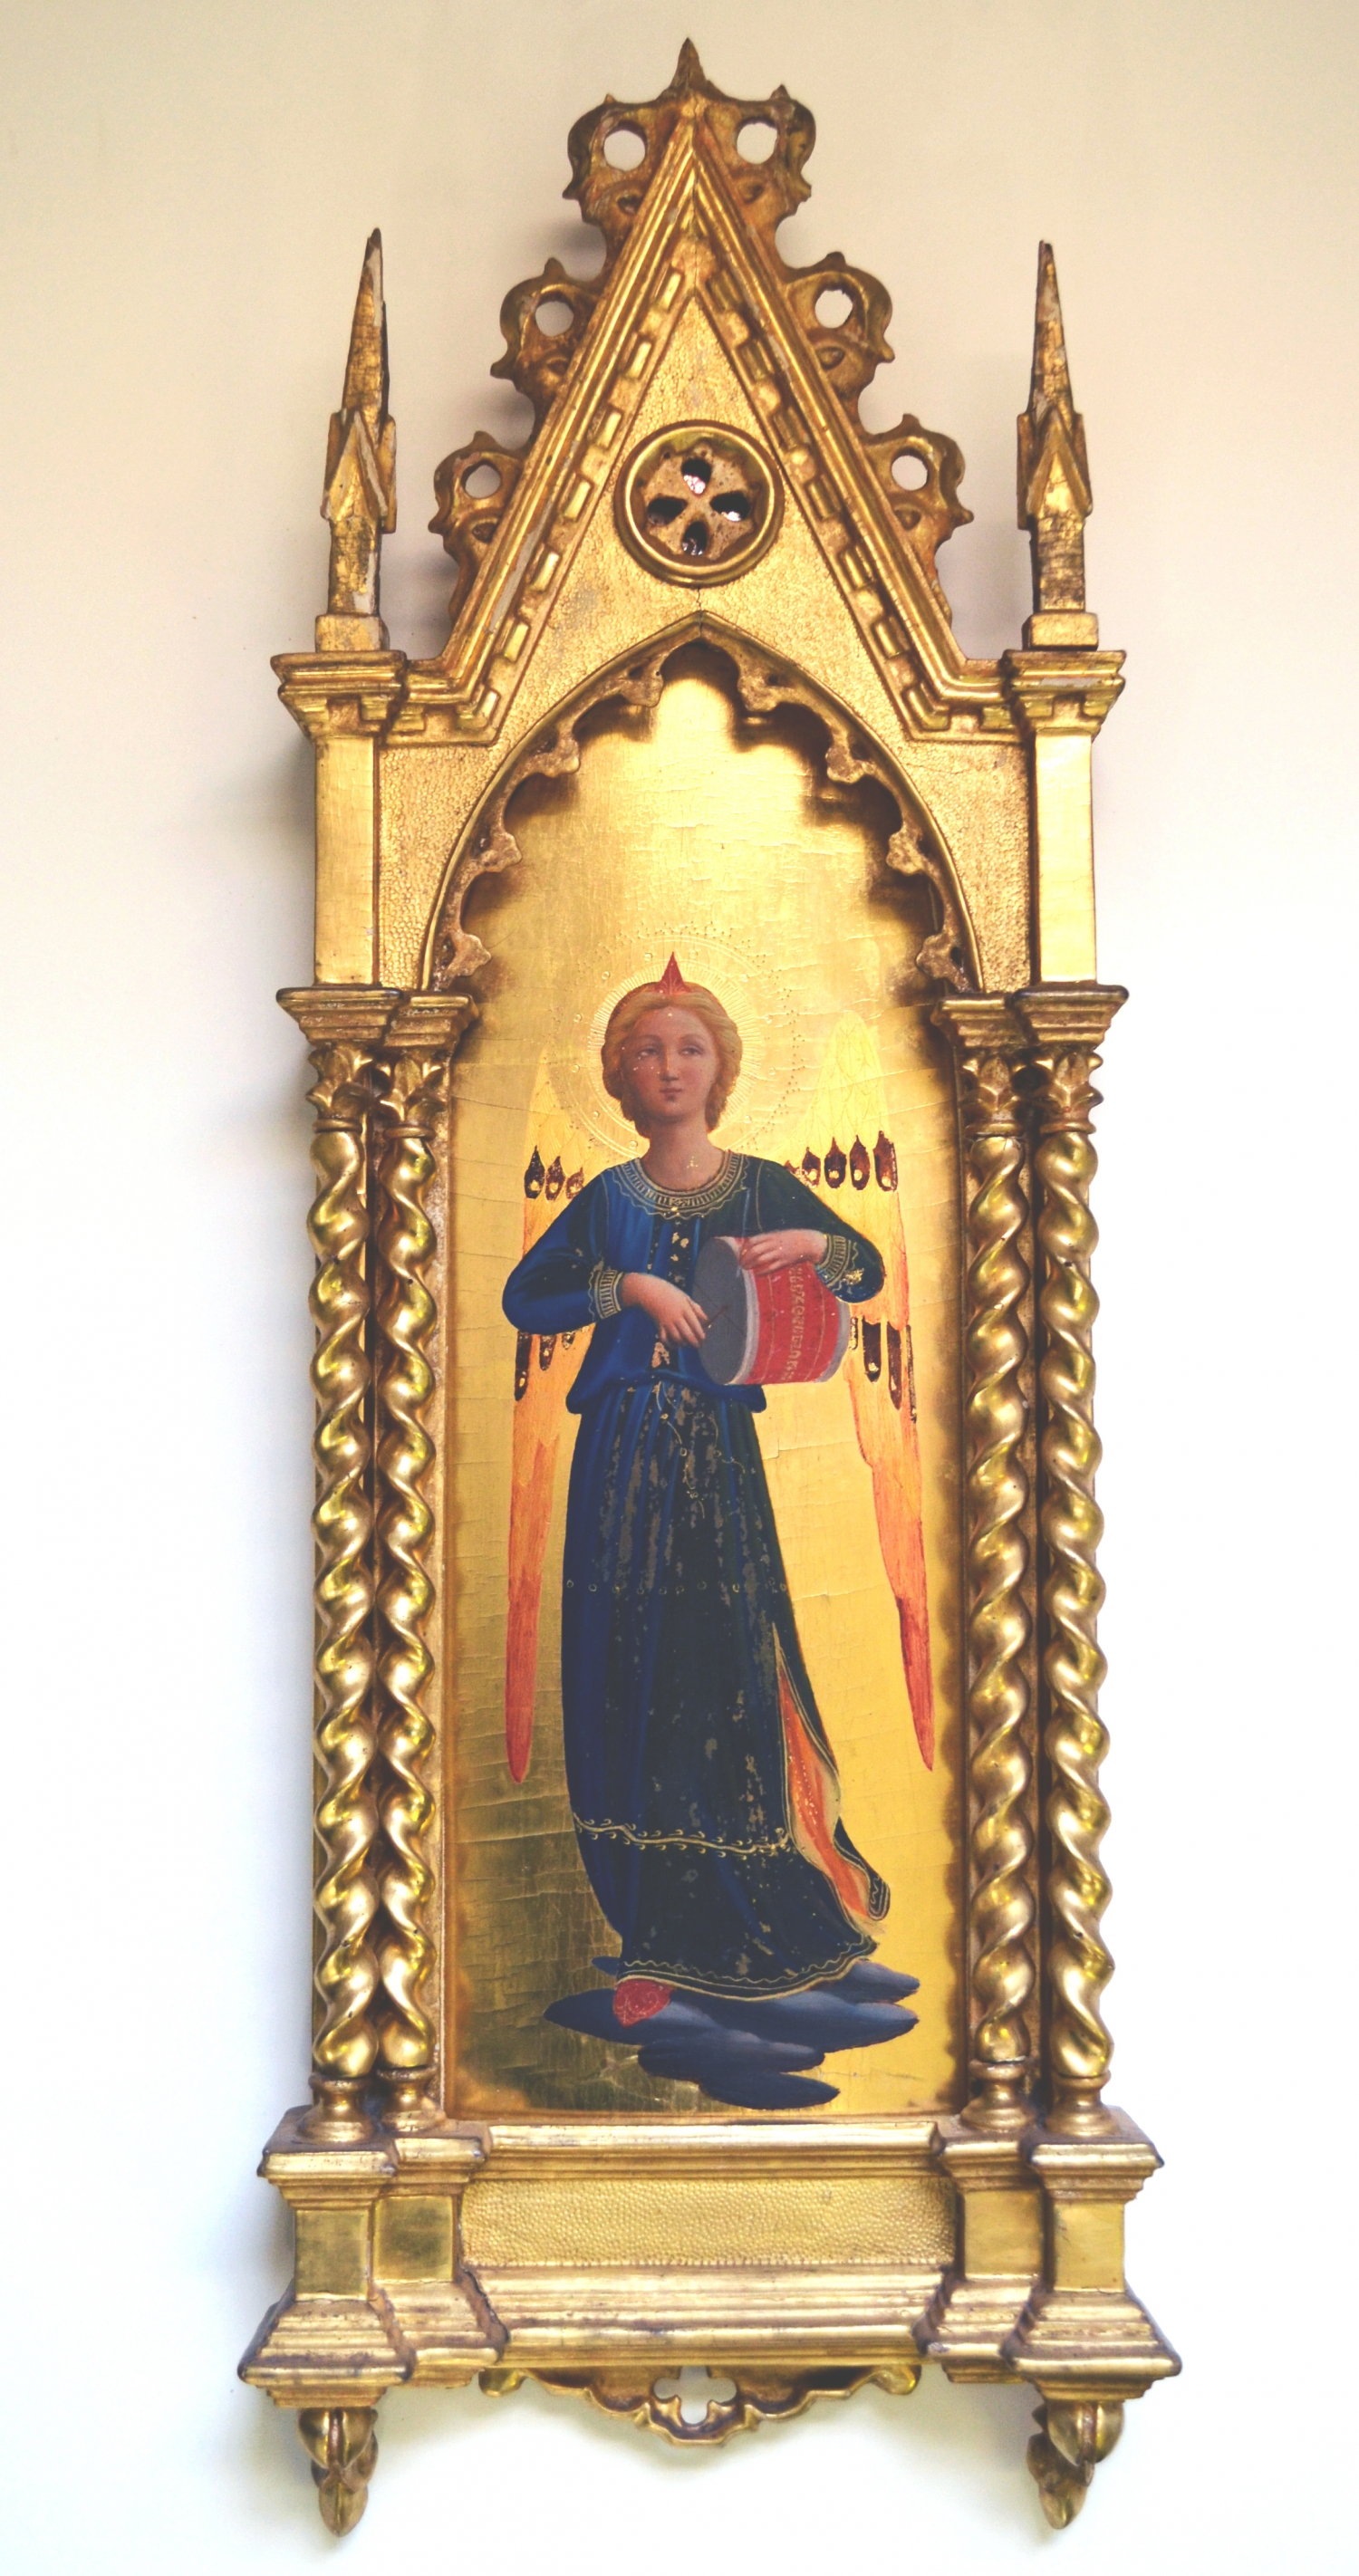 Gilt painted image of saint with halo in gilt painted frame.